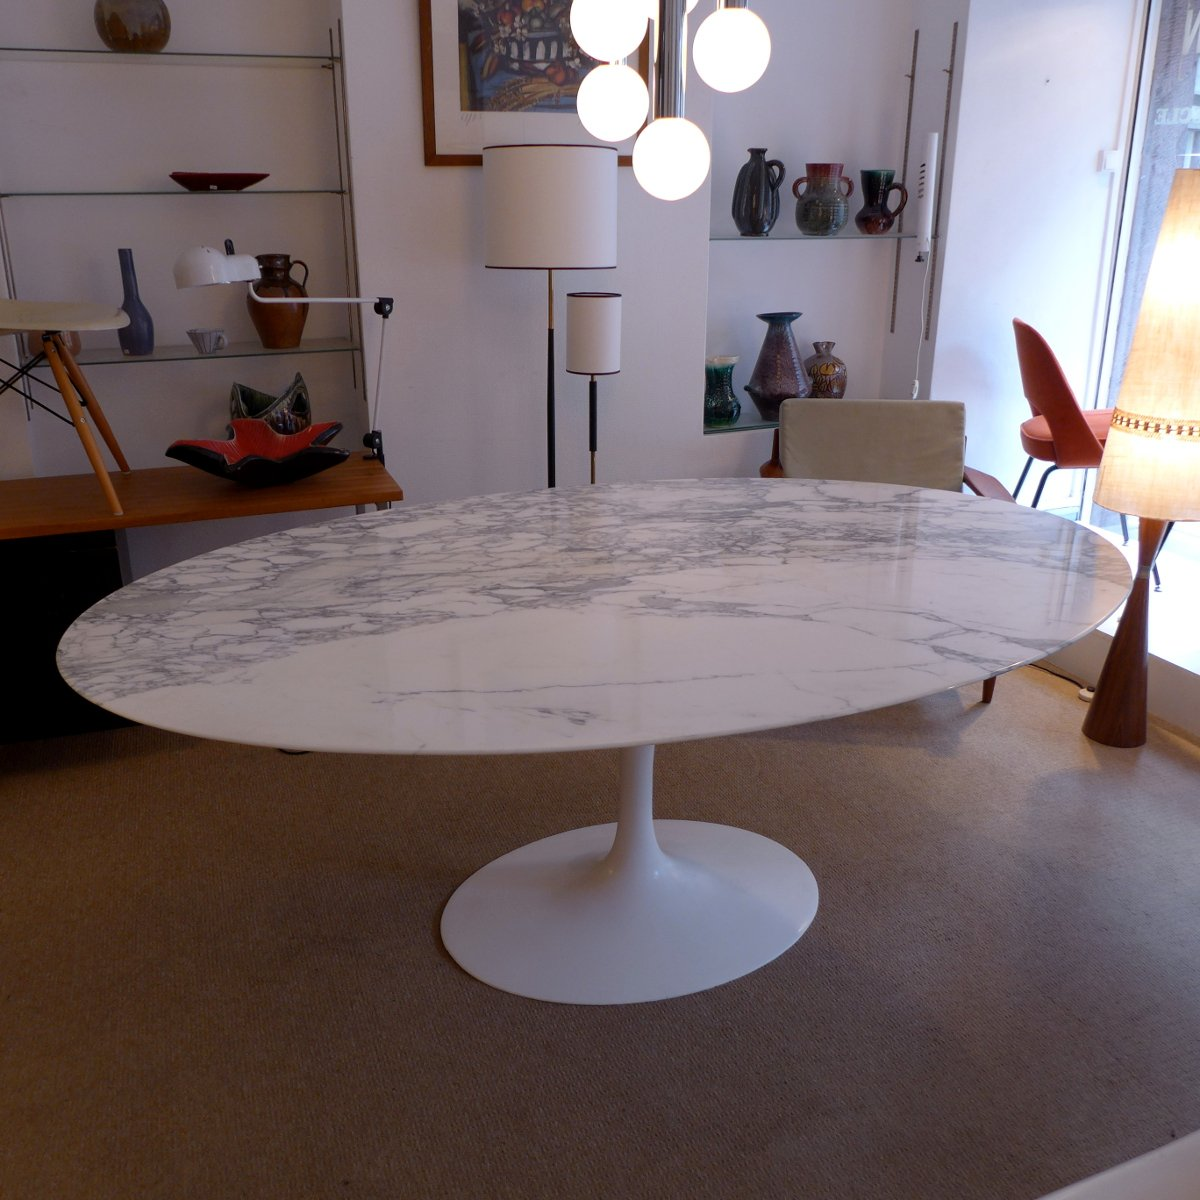 Table de salle manger ovale en marbre par eero saarinen for Table salle a manger ovale blanc